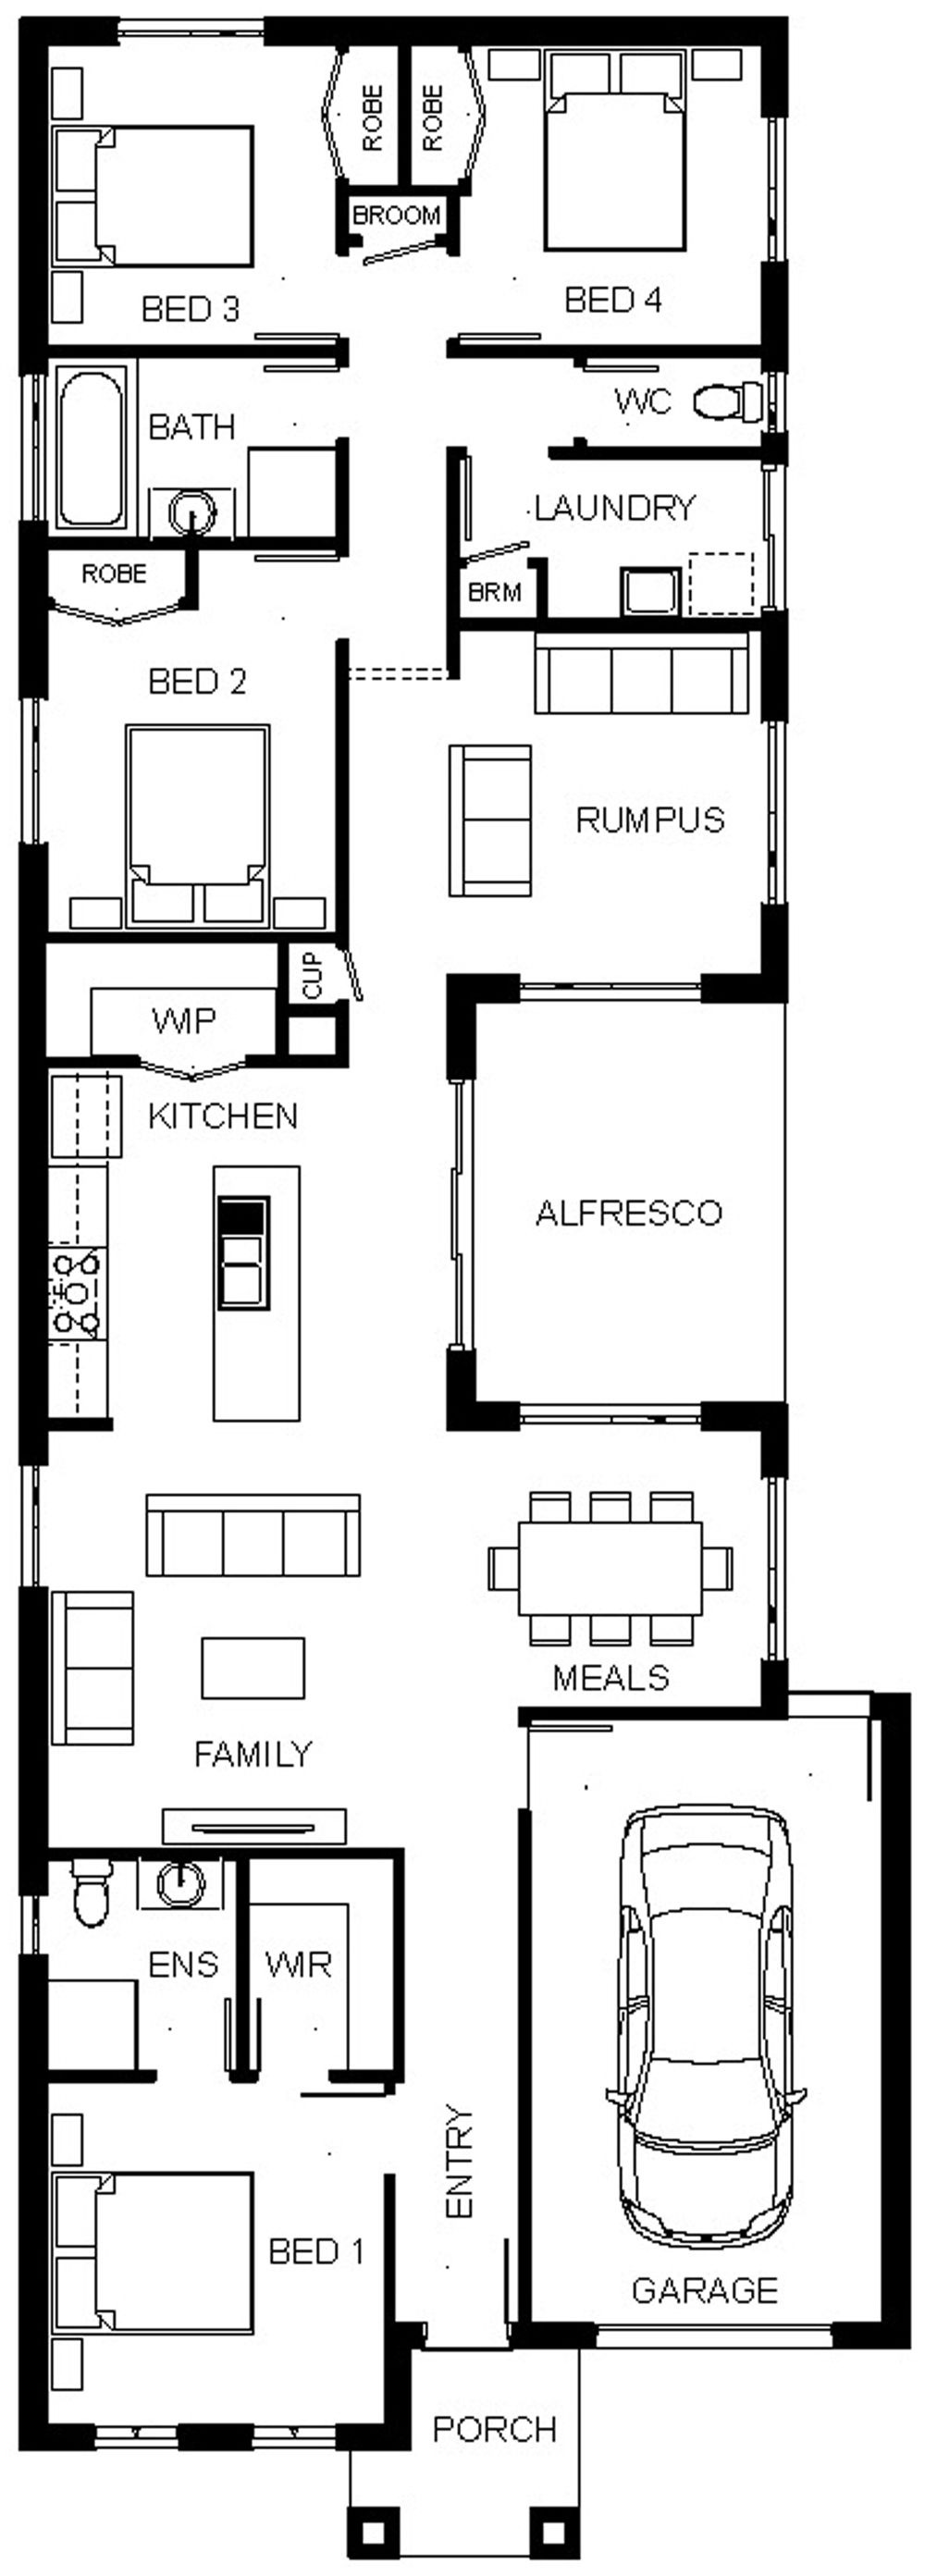 jg king asti floor plans pinterest custom framing steel australia s largest builder of steel frame homes and the new home construction builder of victoria we re also a recognised environment and greensmart